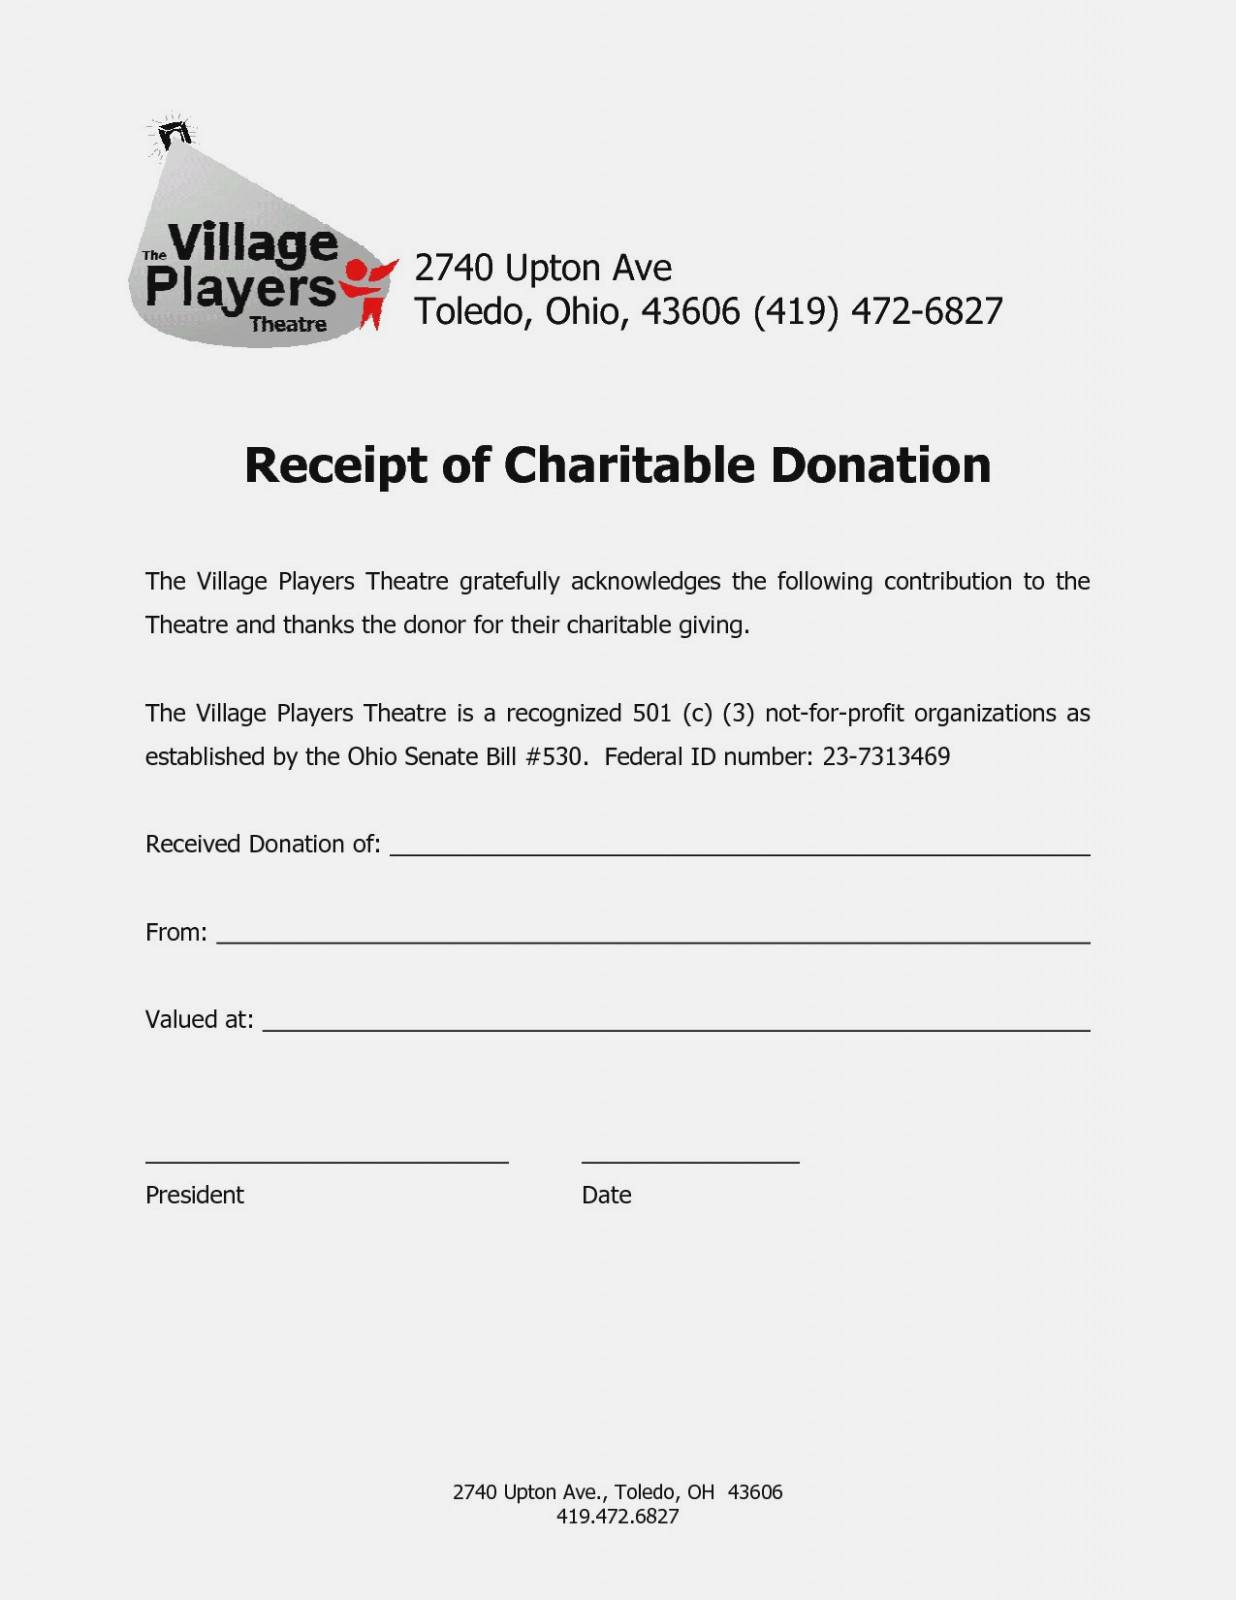 Tax Deductible Donation Form Letter